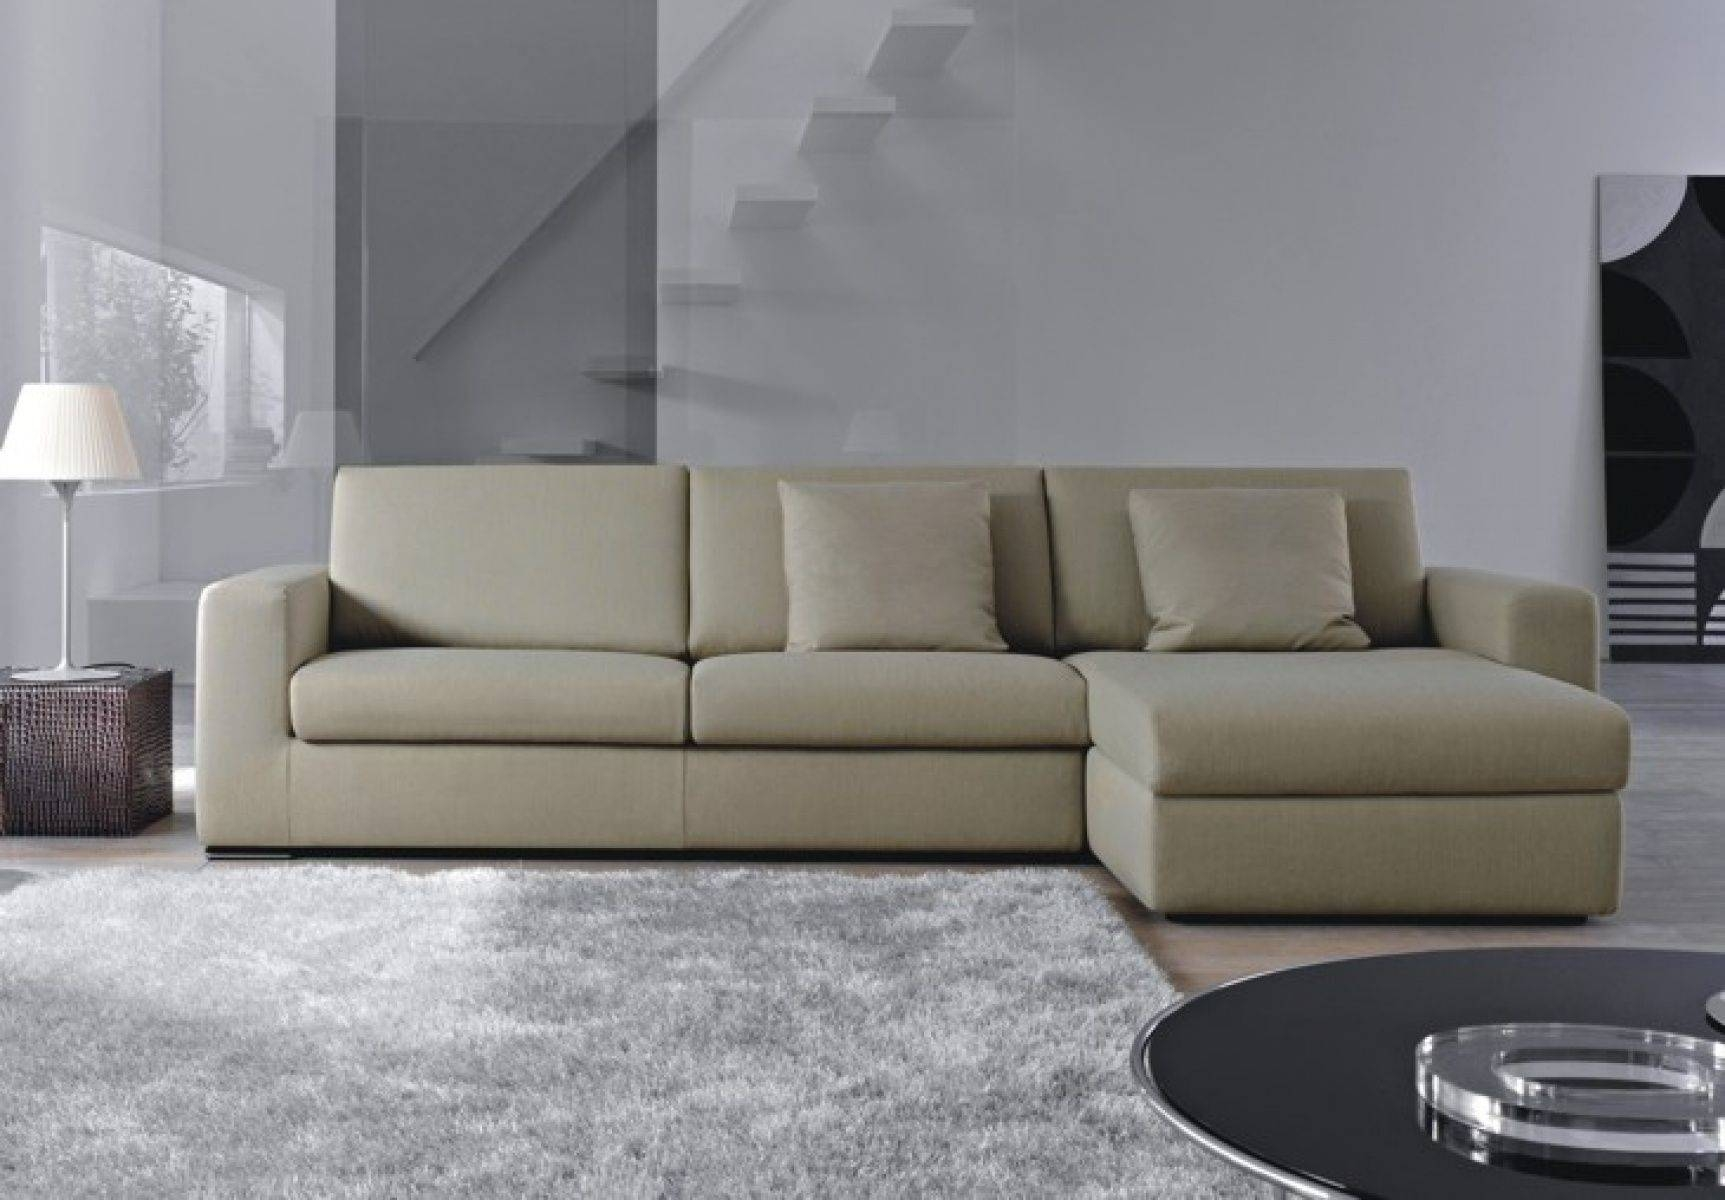 Corner Sofa / Bed / Contemporary / Fabric - Alfred - Doimo Salotti within Contemporary Fabric Sofas (Image 3 of 30)